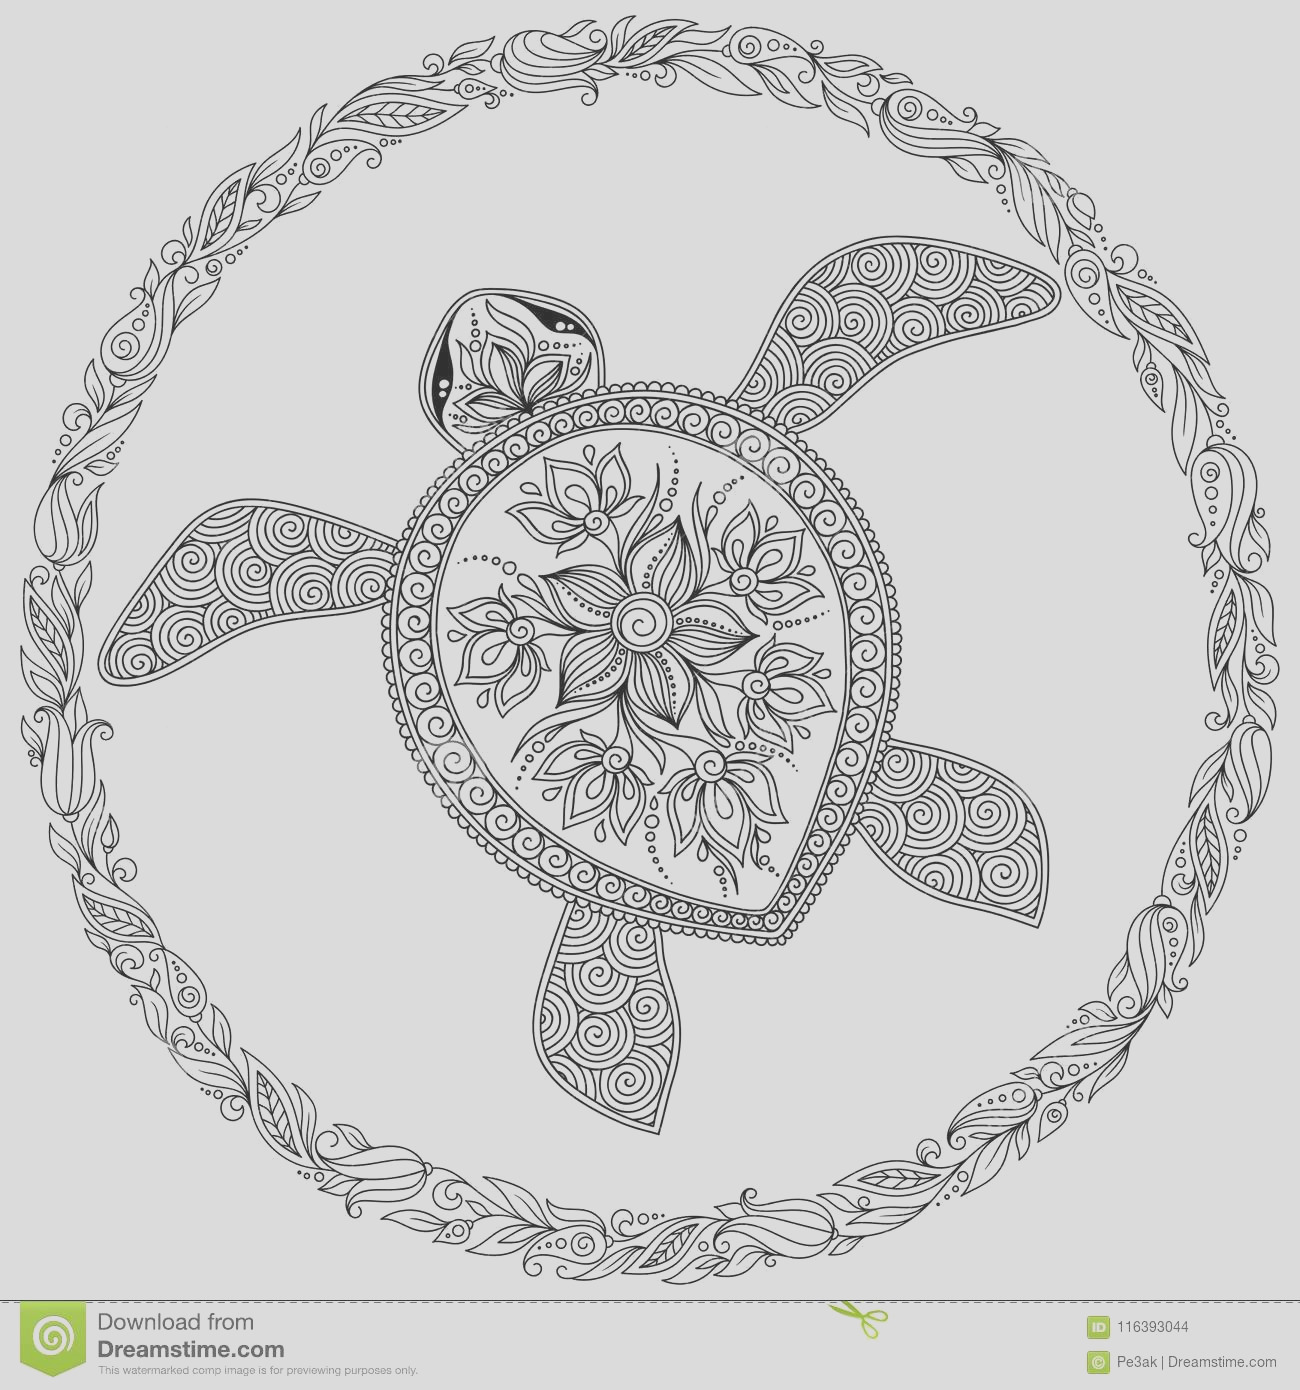 vector illustration sea turtle coloring book pages coloring book adults coloring page turtle different ornaments image